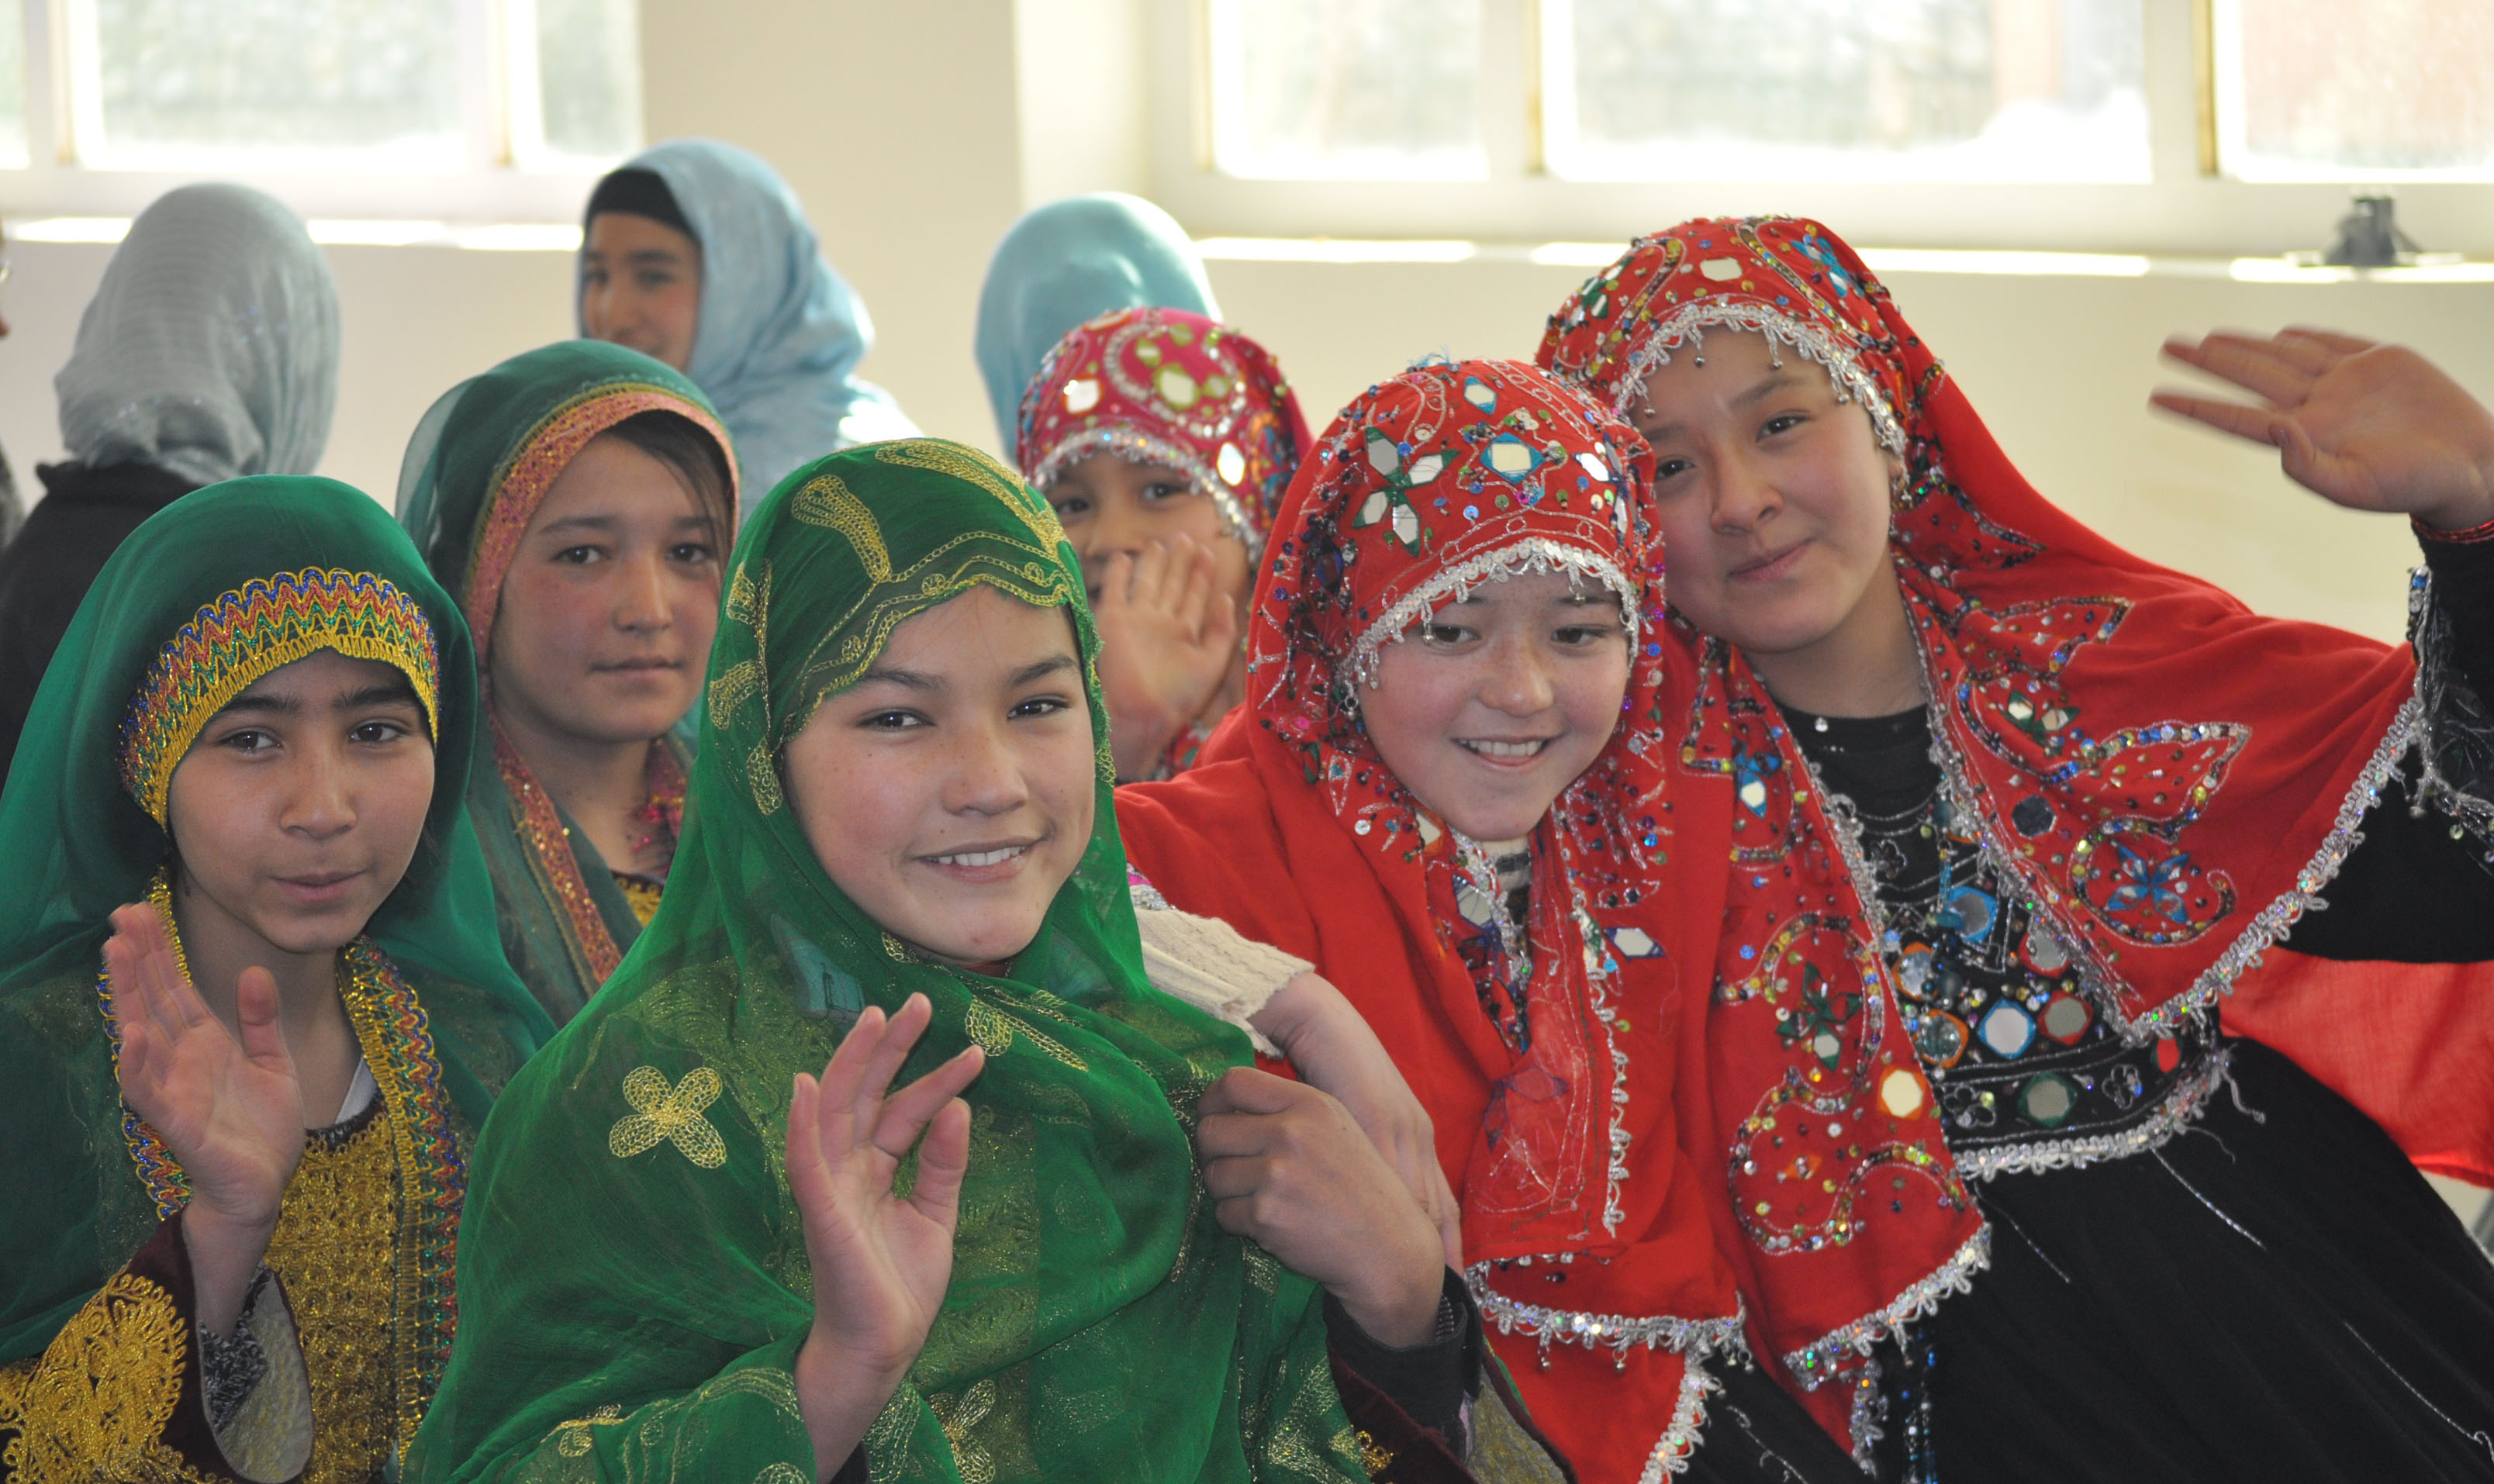 hazara afghanistan pakistan ghazni hazaras community mongols wikipedia culture pashtun international tajik young minority wiki reaching traditional wearing face celebrating